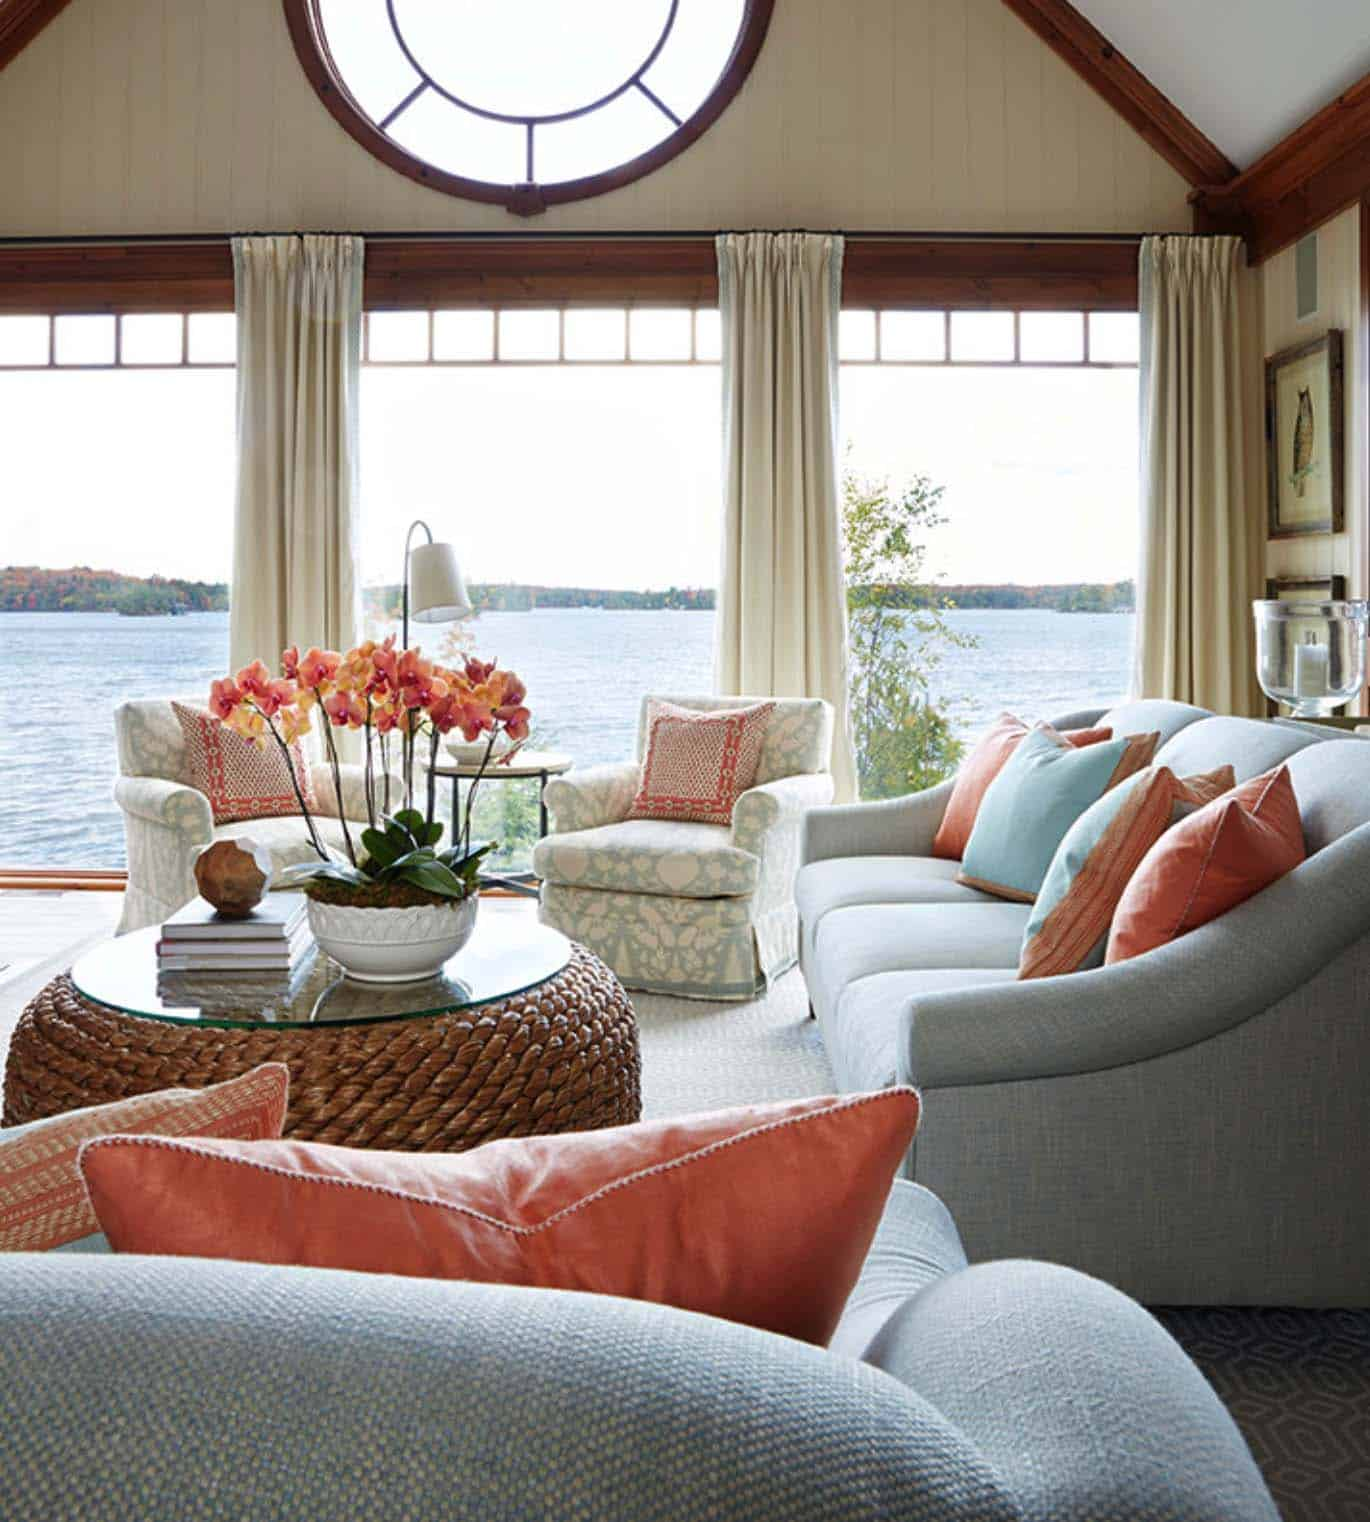 Muskoka Lake House-Anne Hepfer Designs-02-1 Kindesign